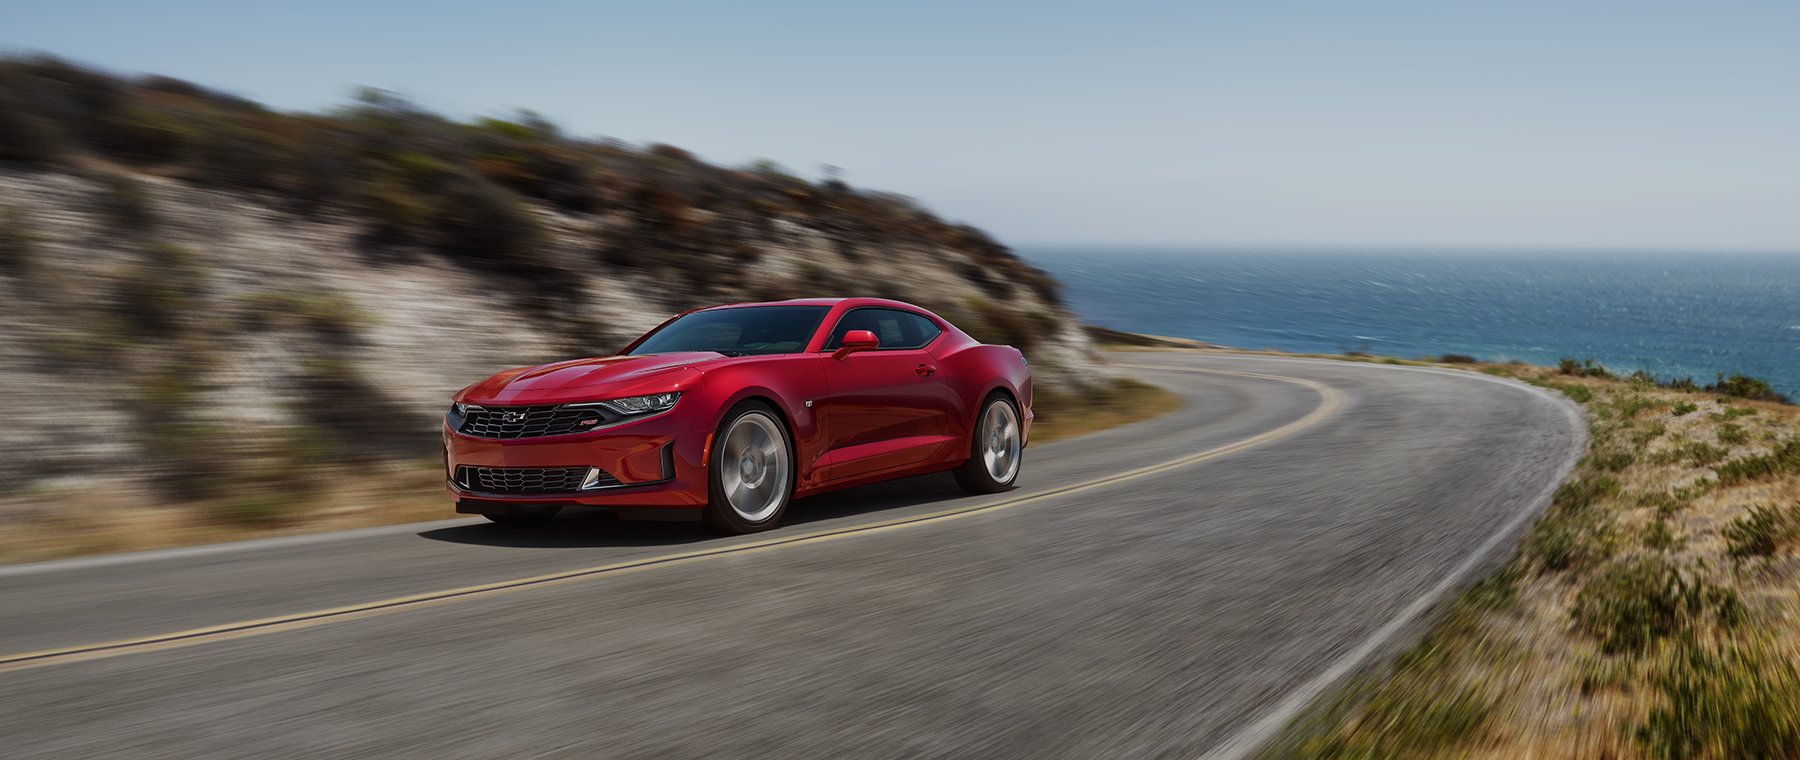 2020 chevrolet camaro red driving down a road